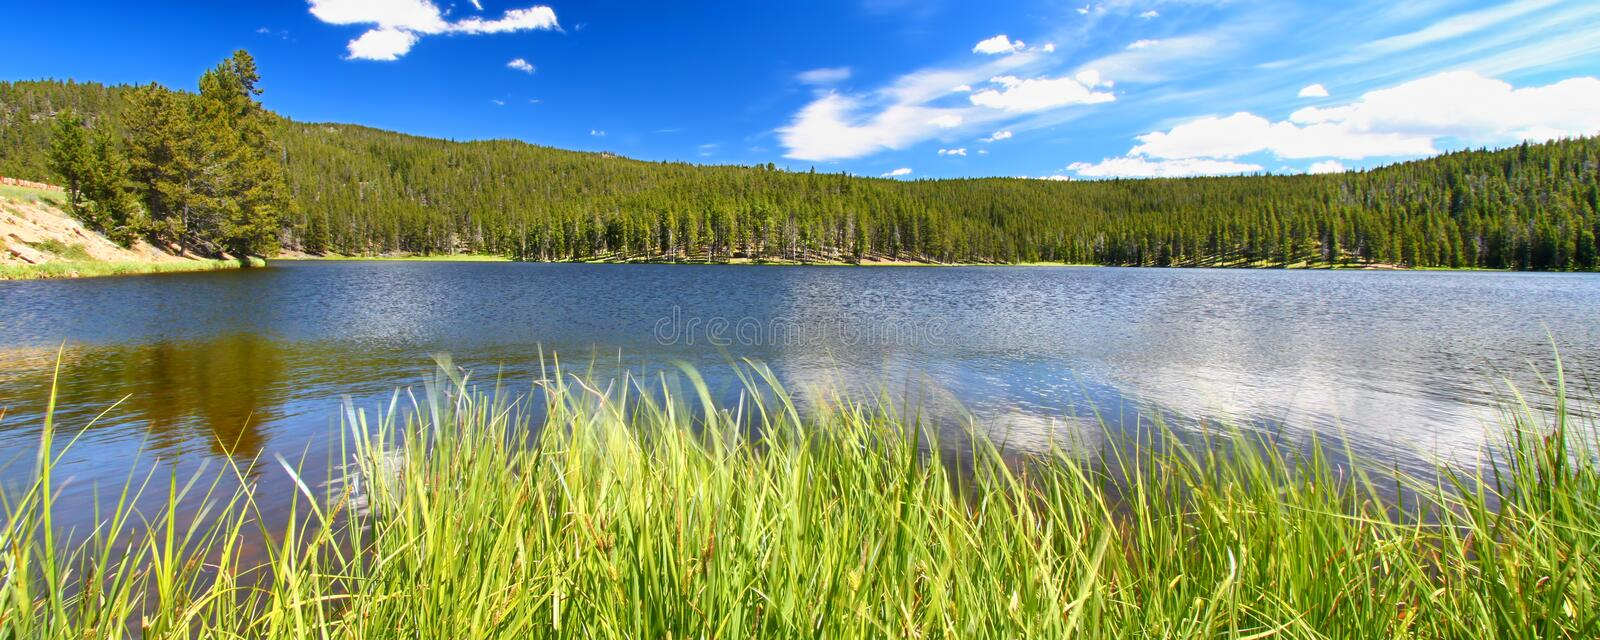 Sibley Lake Bighorn National Forest. Panoramic view of Sibley Lake in the Bighorn National Forest of Wyoming stock photos